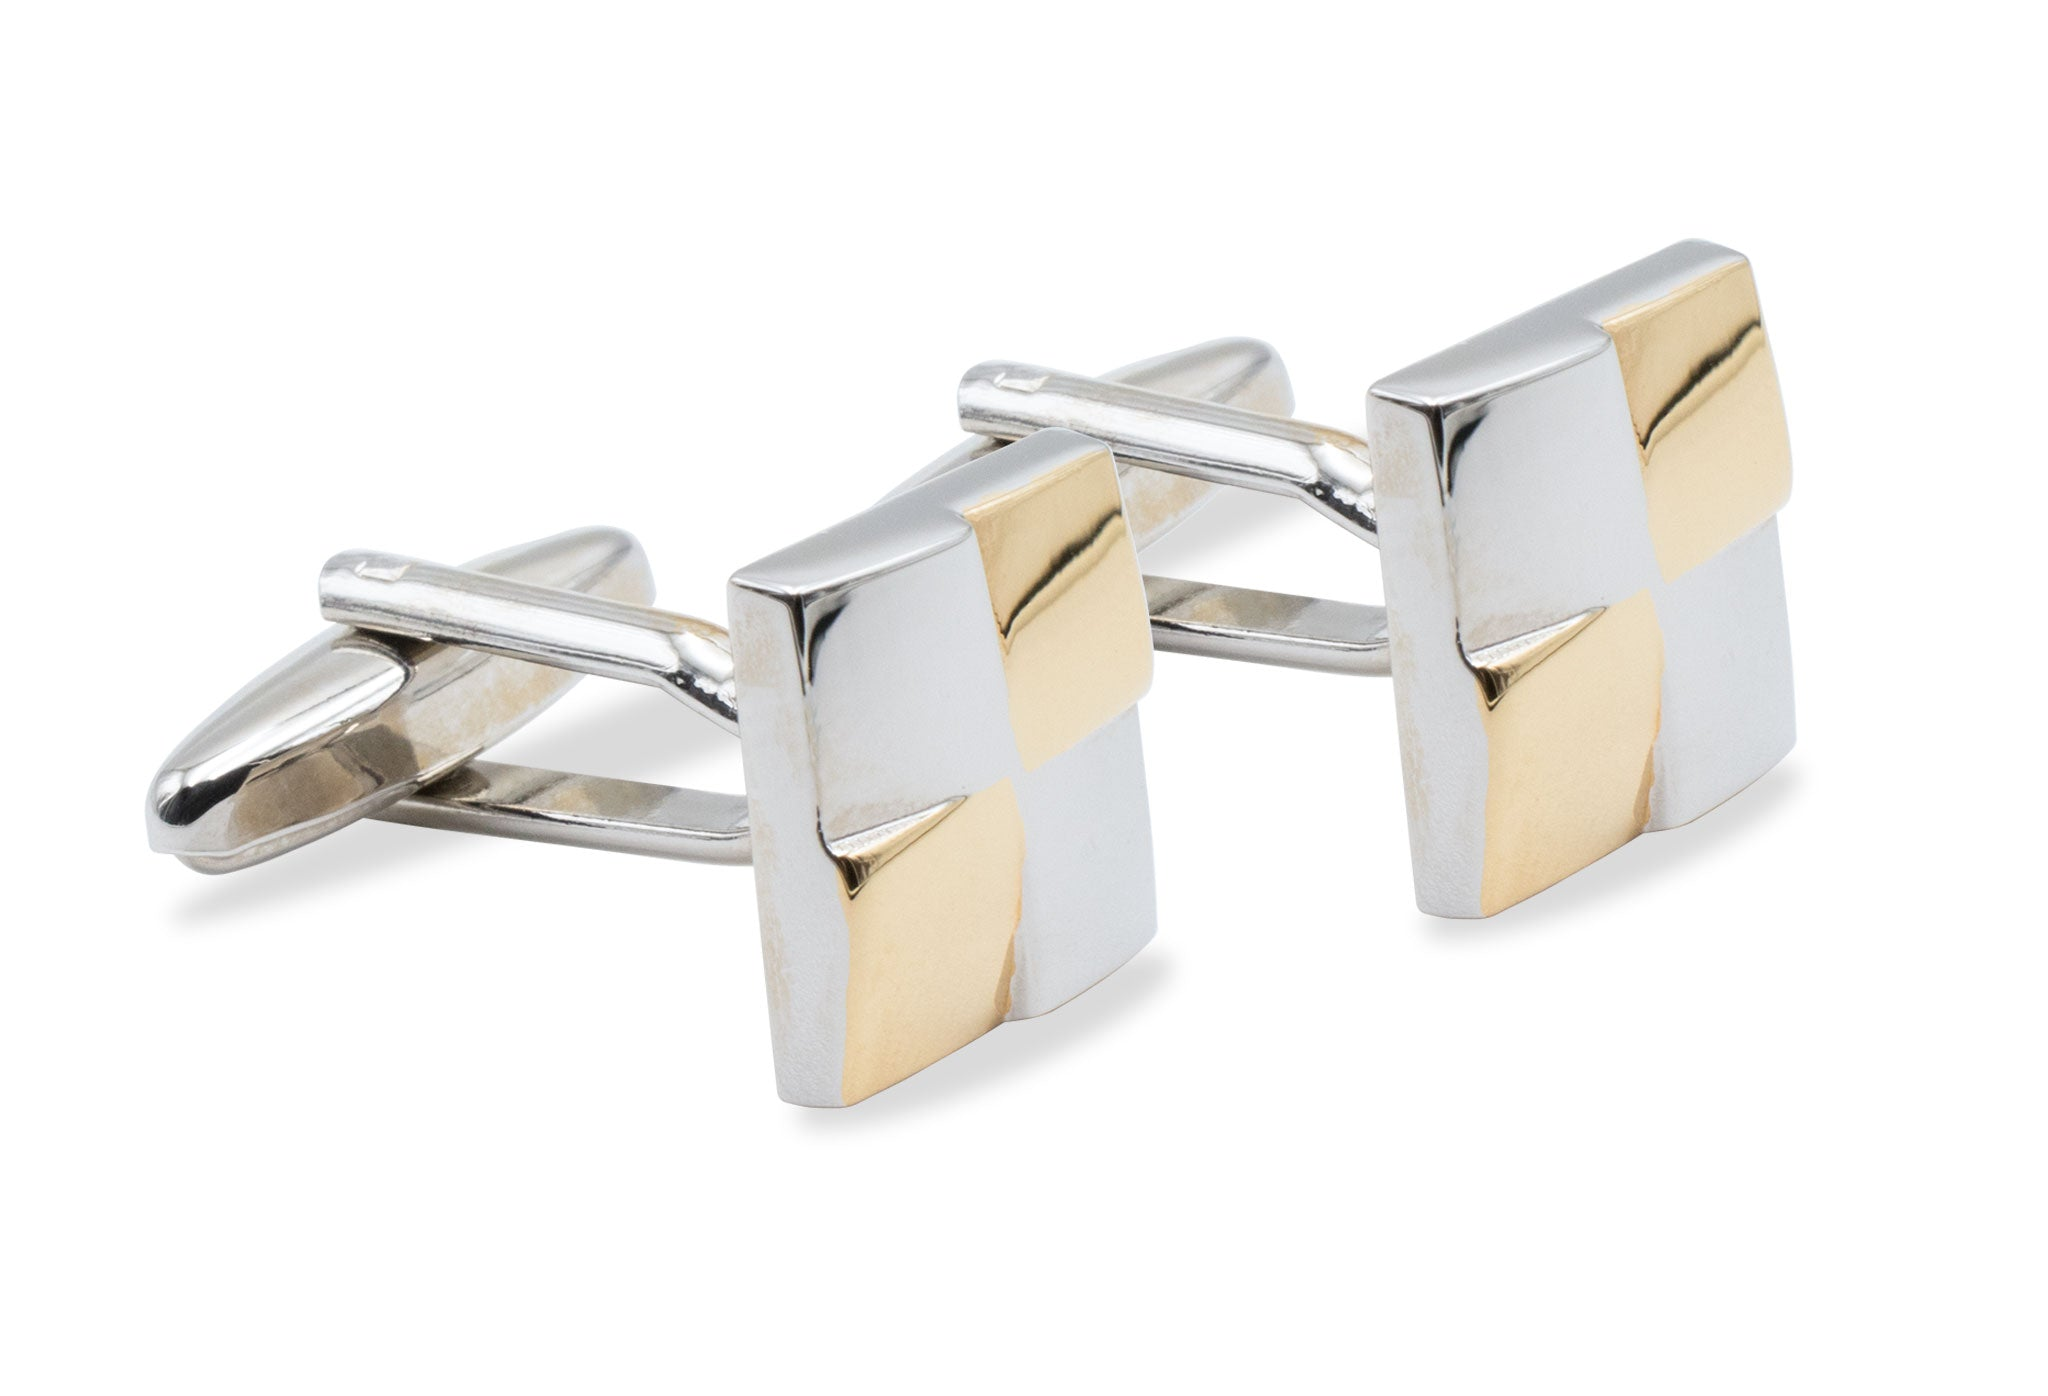 Yare Gold-Tone & Chrome Cufflink